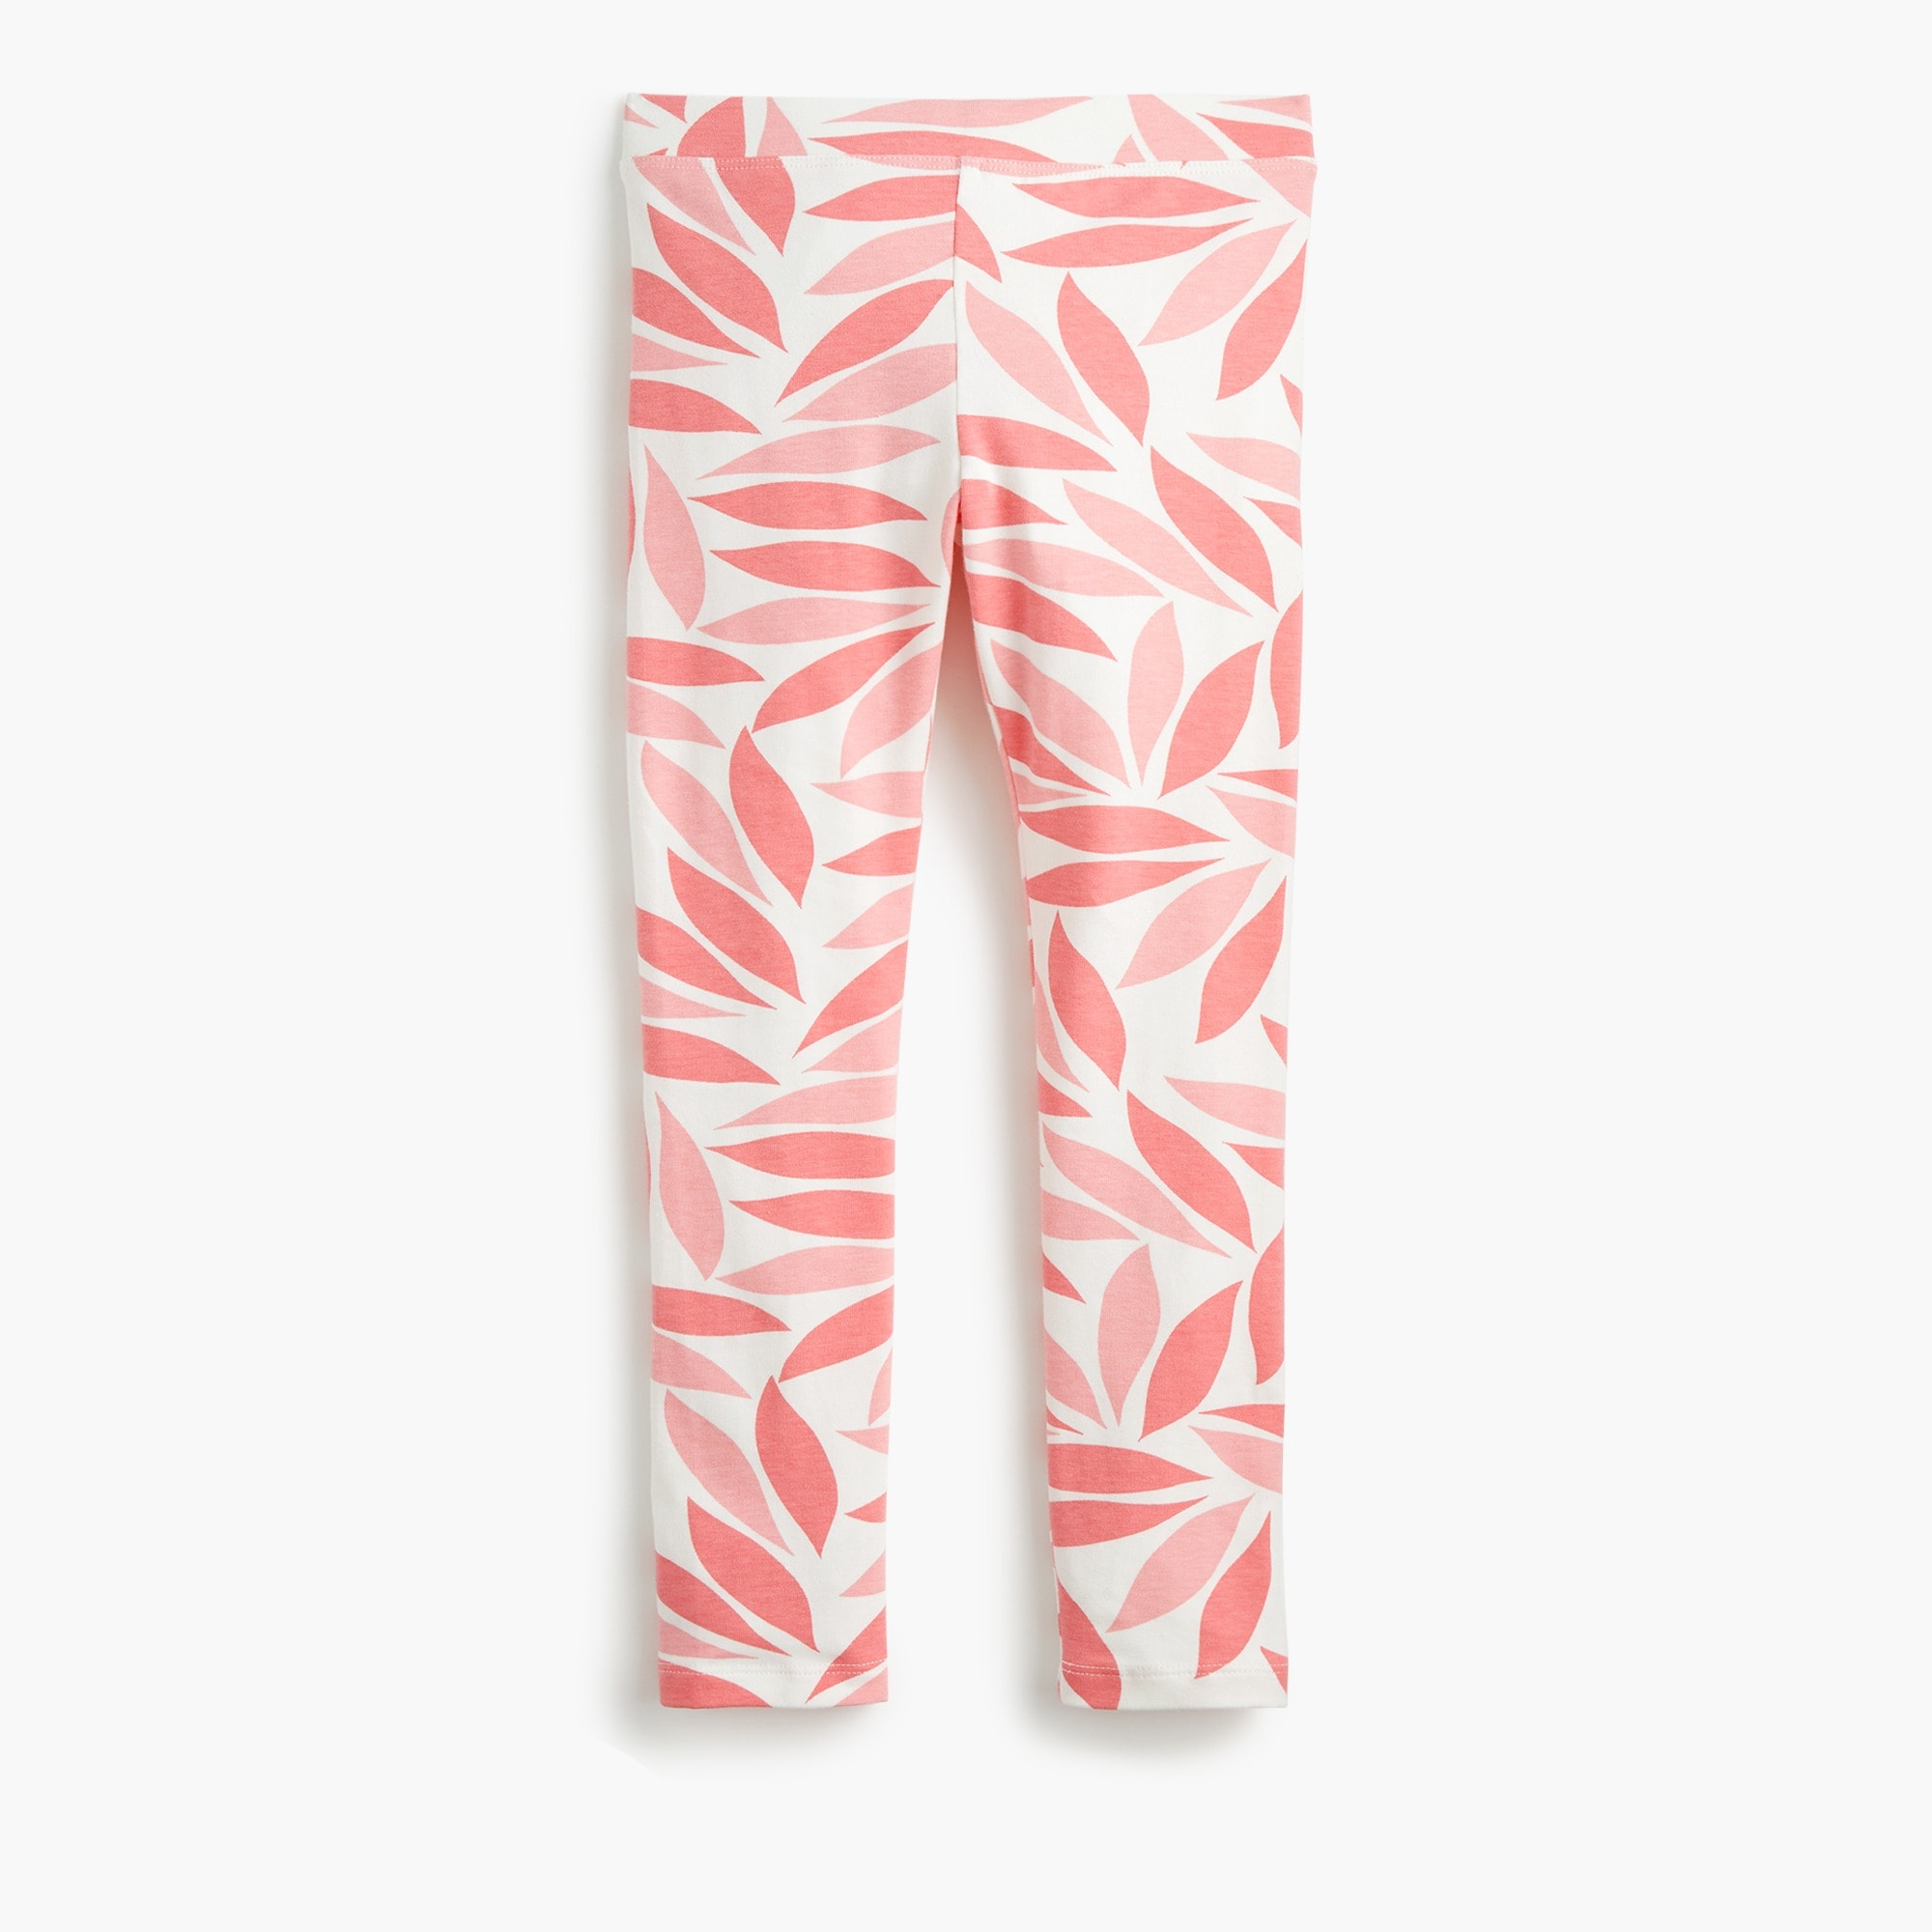 Image 1 for Girls' everyday leggings in coral petal